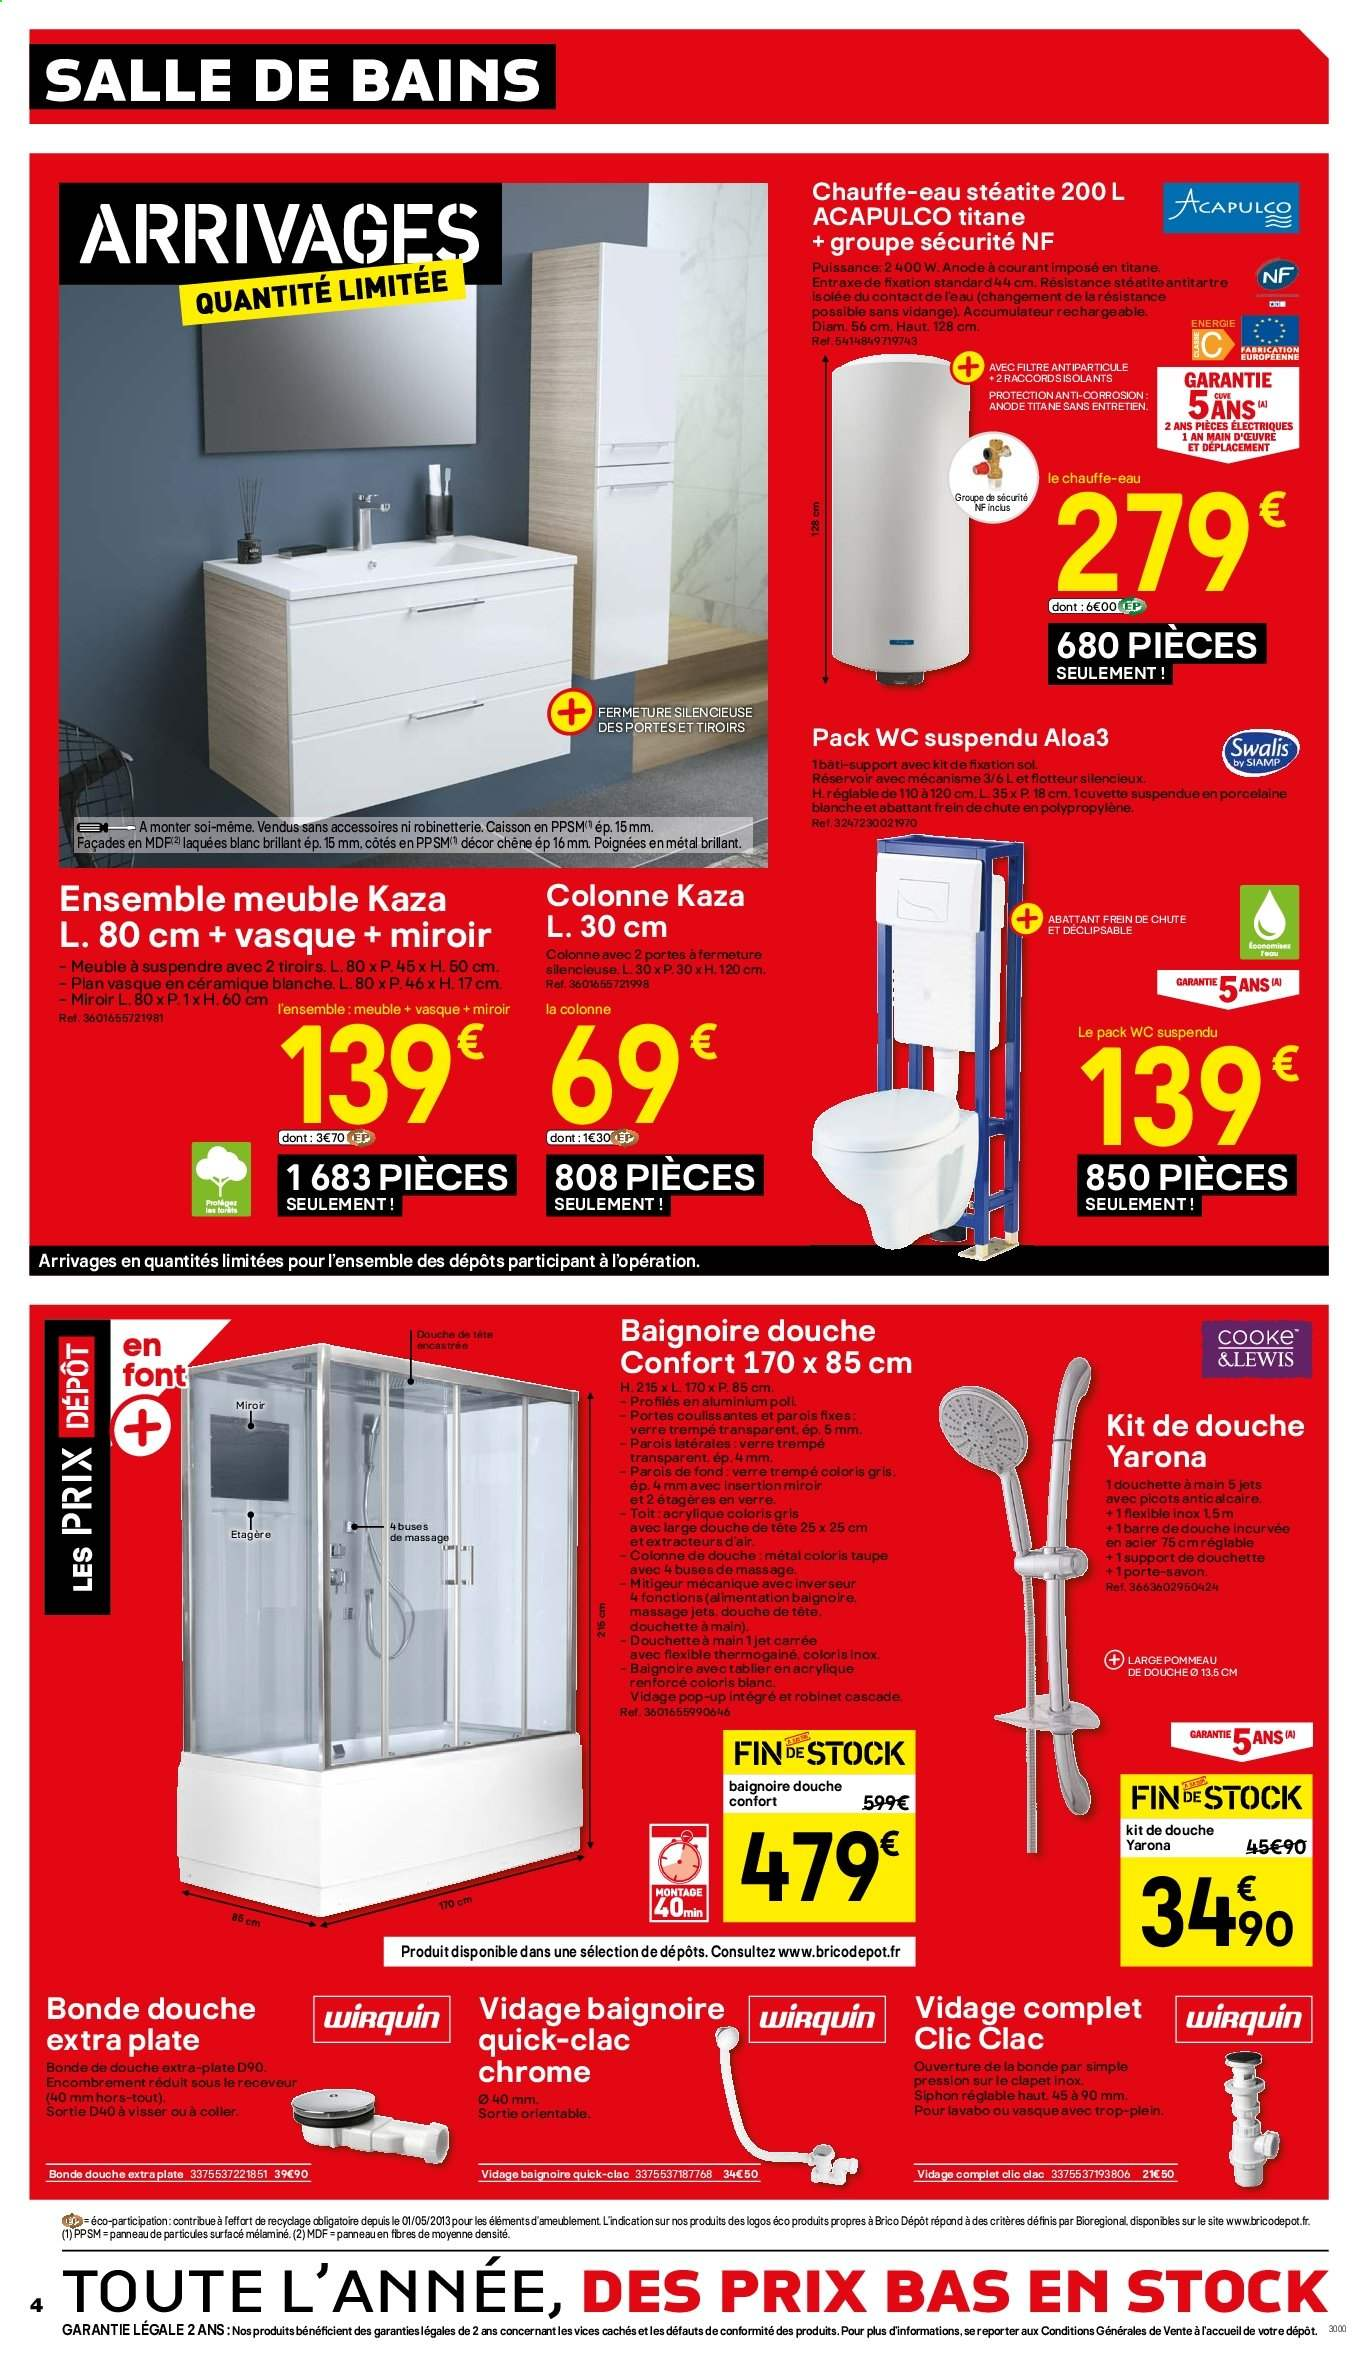 Catalogue Brico Depot 17 01 2020 31 01 2020 Page 4 Vos Promos